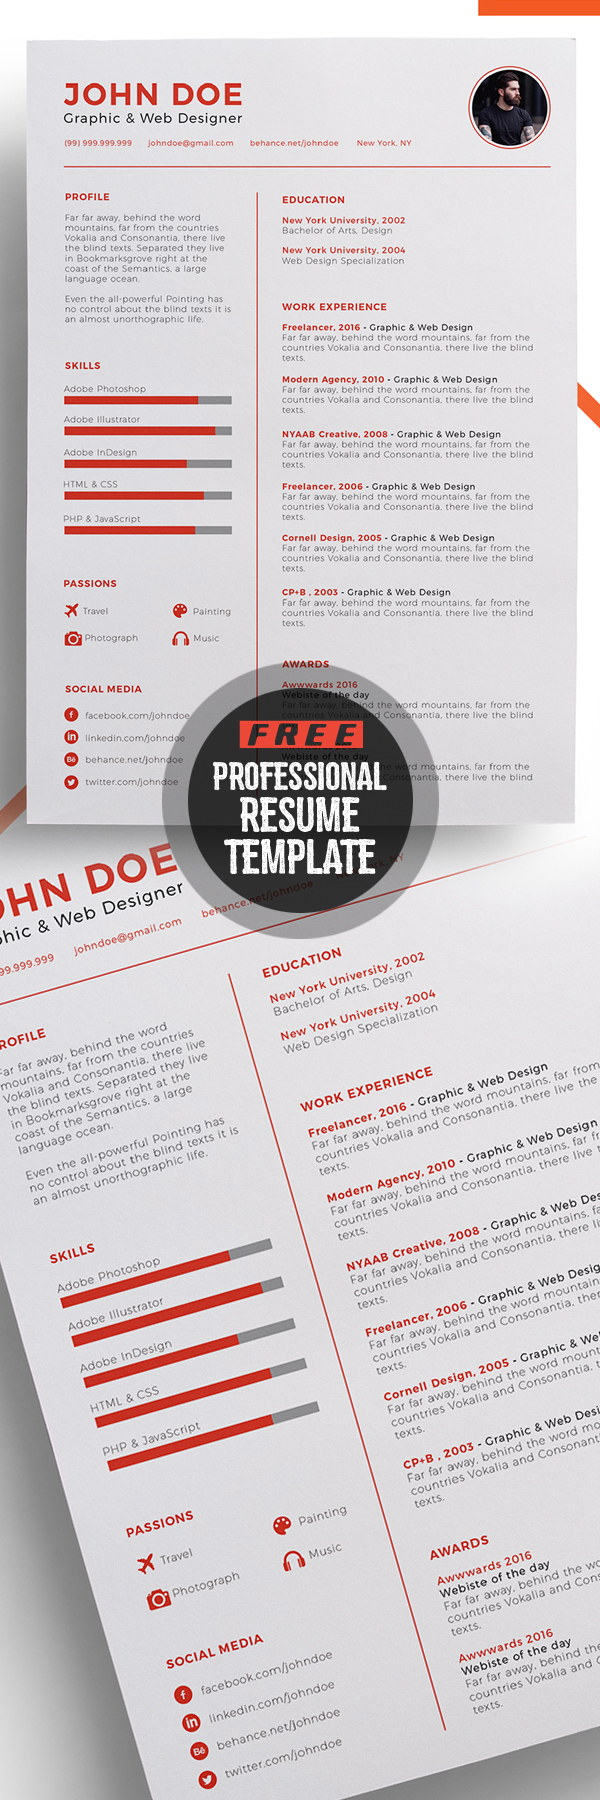 Professional Free Resume Template Design